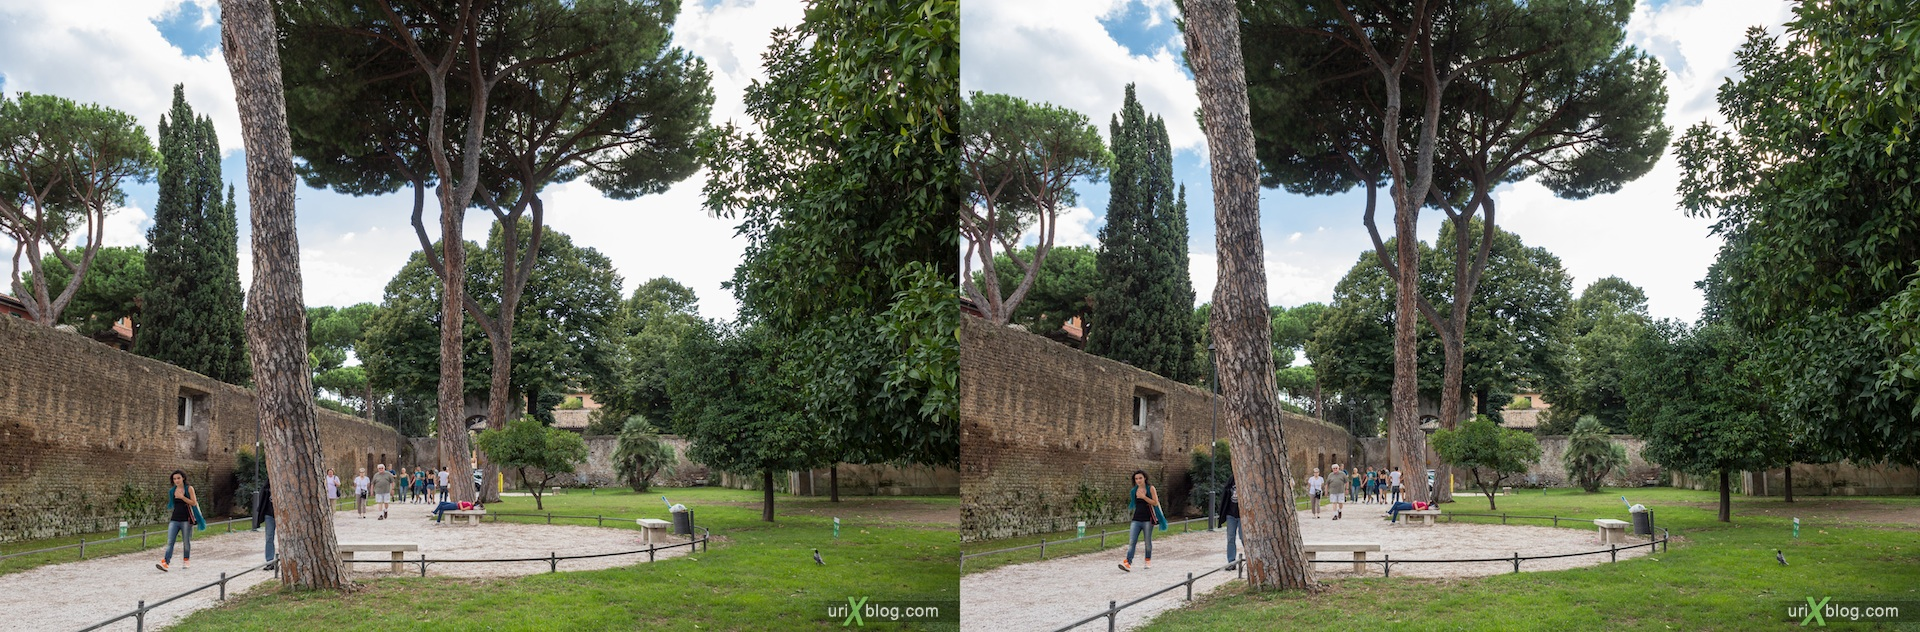 2012, garden of the oranges, Savello park, basilica of Santa Sabina, Rome, Italy, Europe, 3D, stereo pair, cross-eyed, crossview, cross view stereo pair